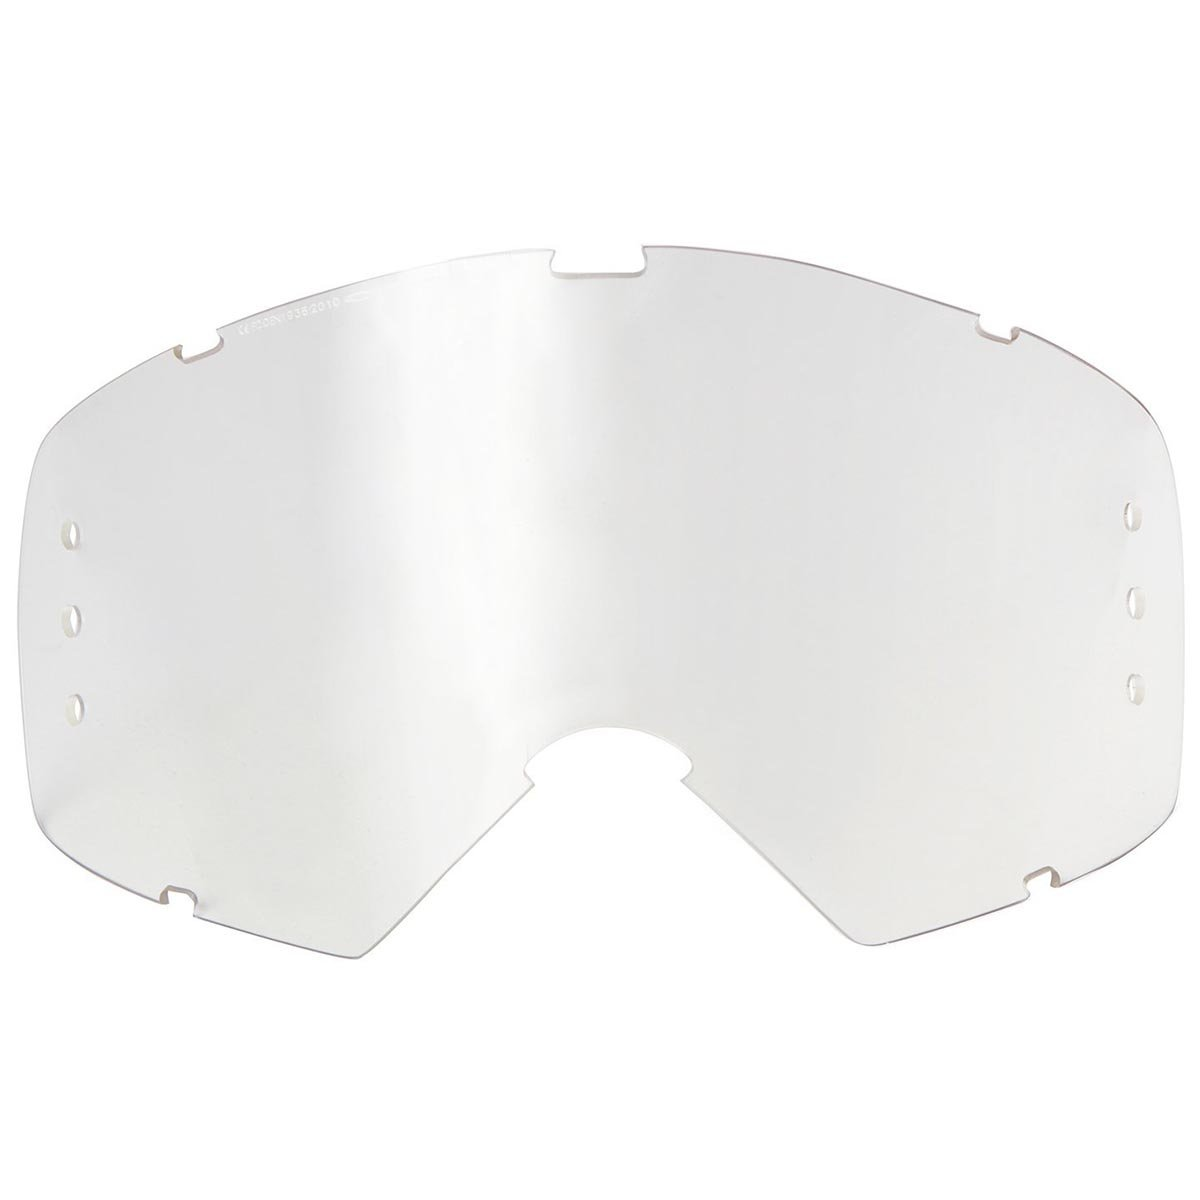 Oakley Mayhem MX Men's Replacement Goggle Lens (Clear, One Size)